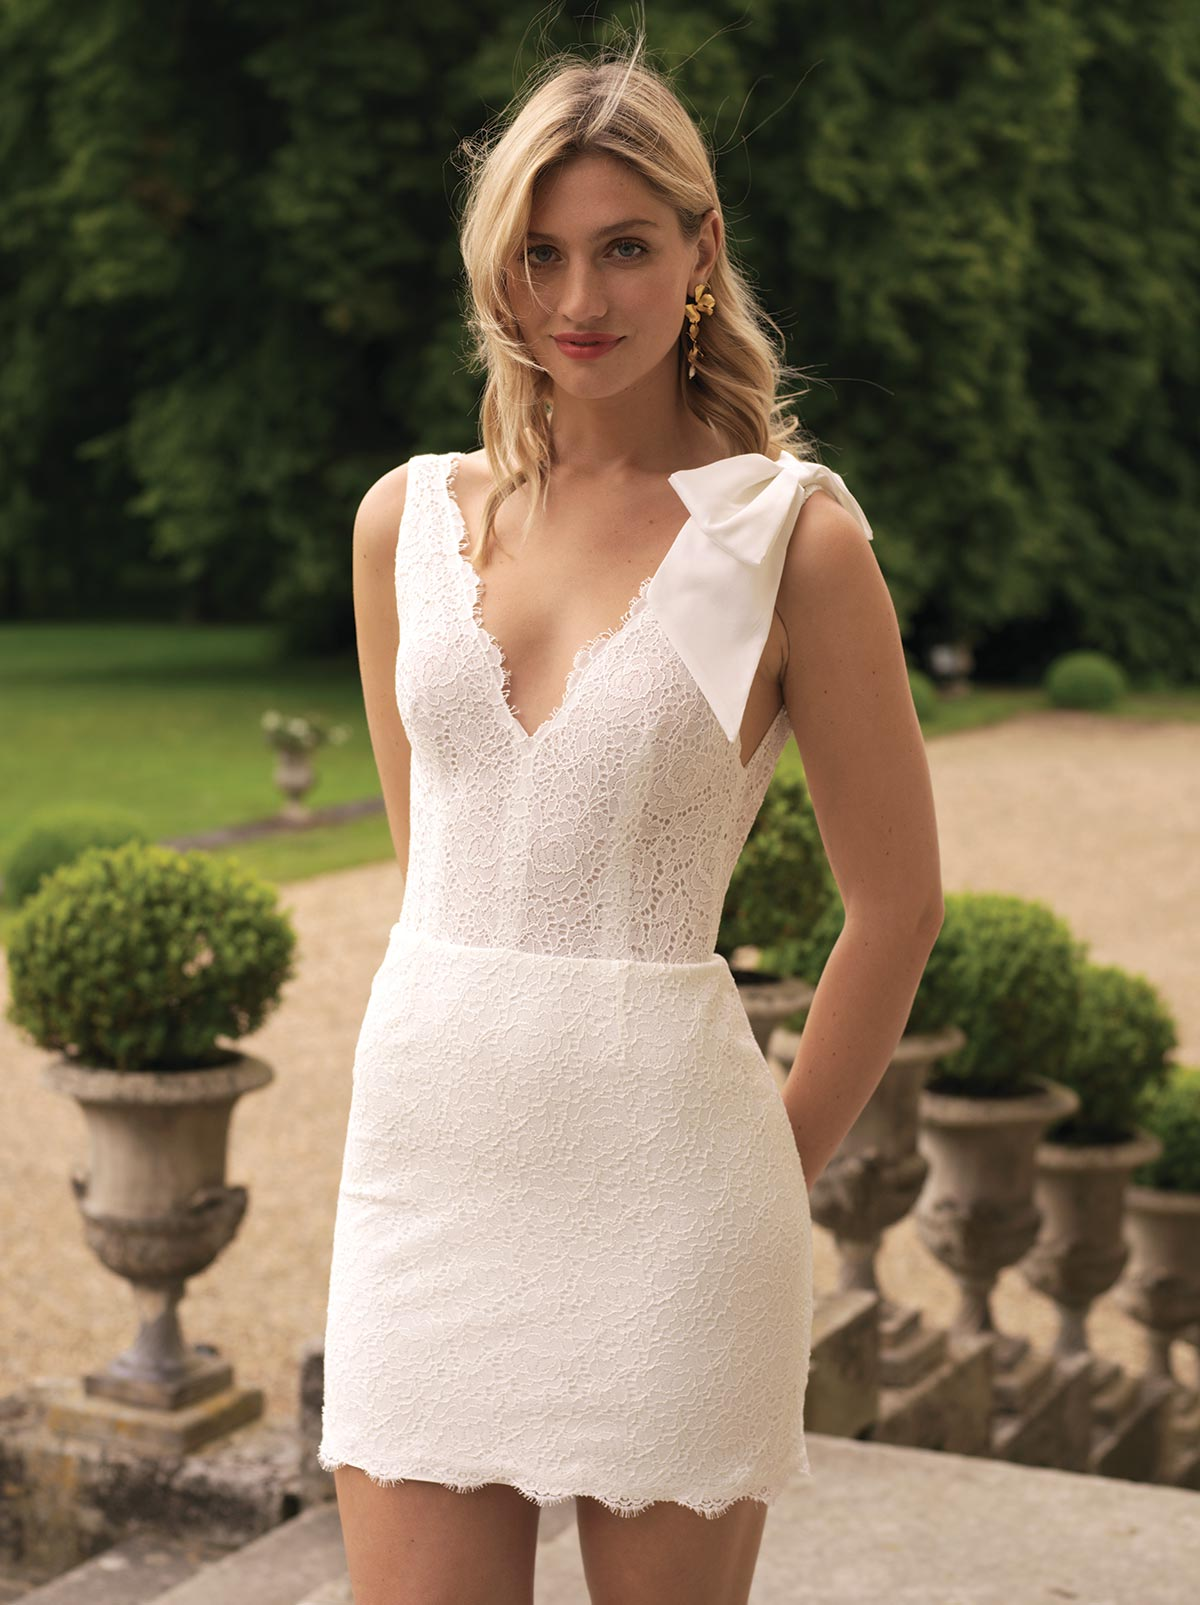 opaline-robe-face-marie-laporte-collection-2020